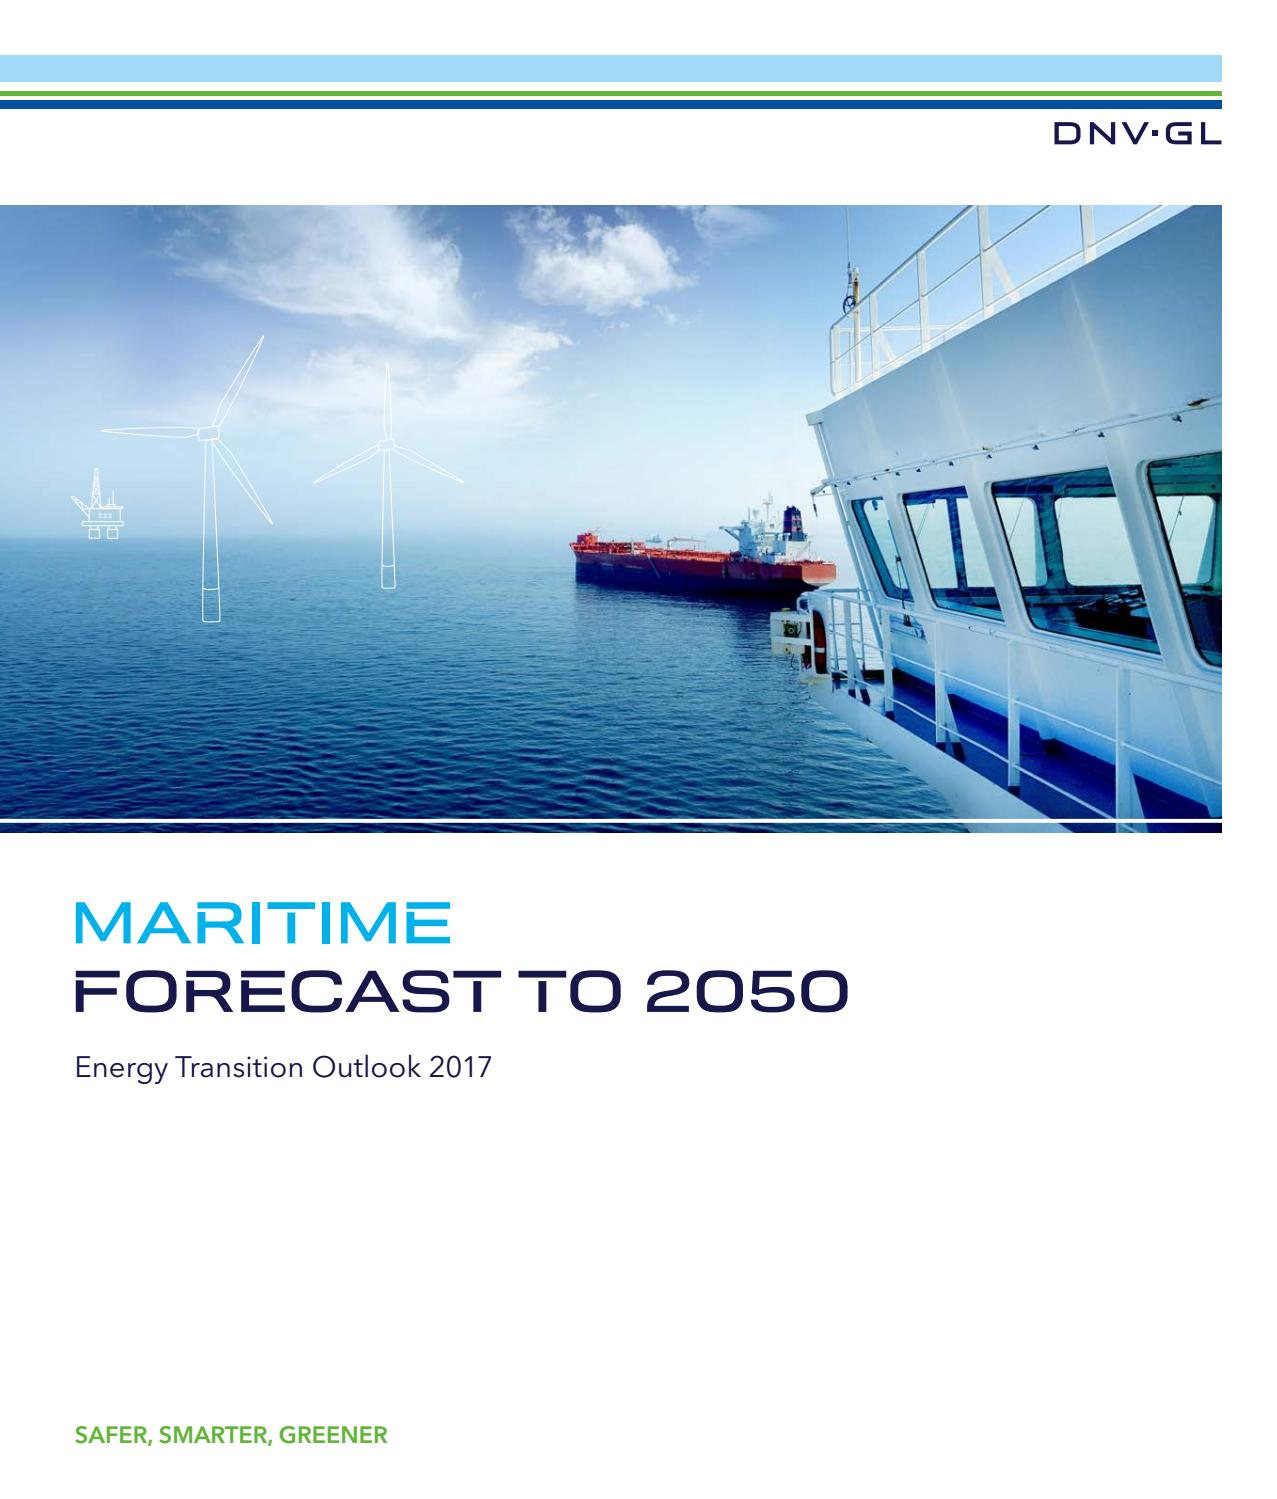 DNV GL 2017 maritime forecast to 2050 by Maritime